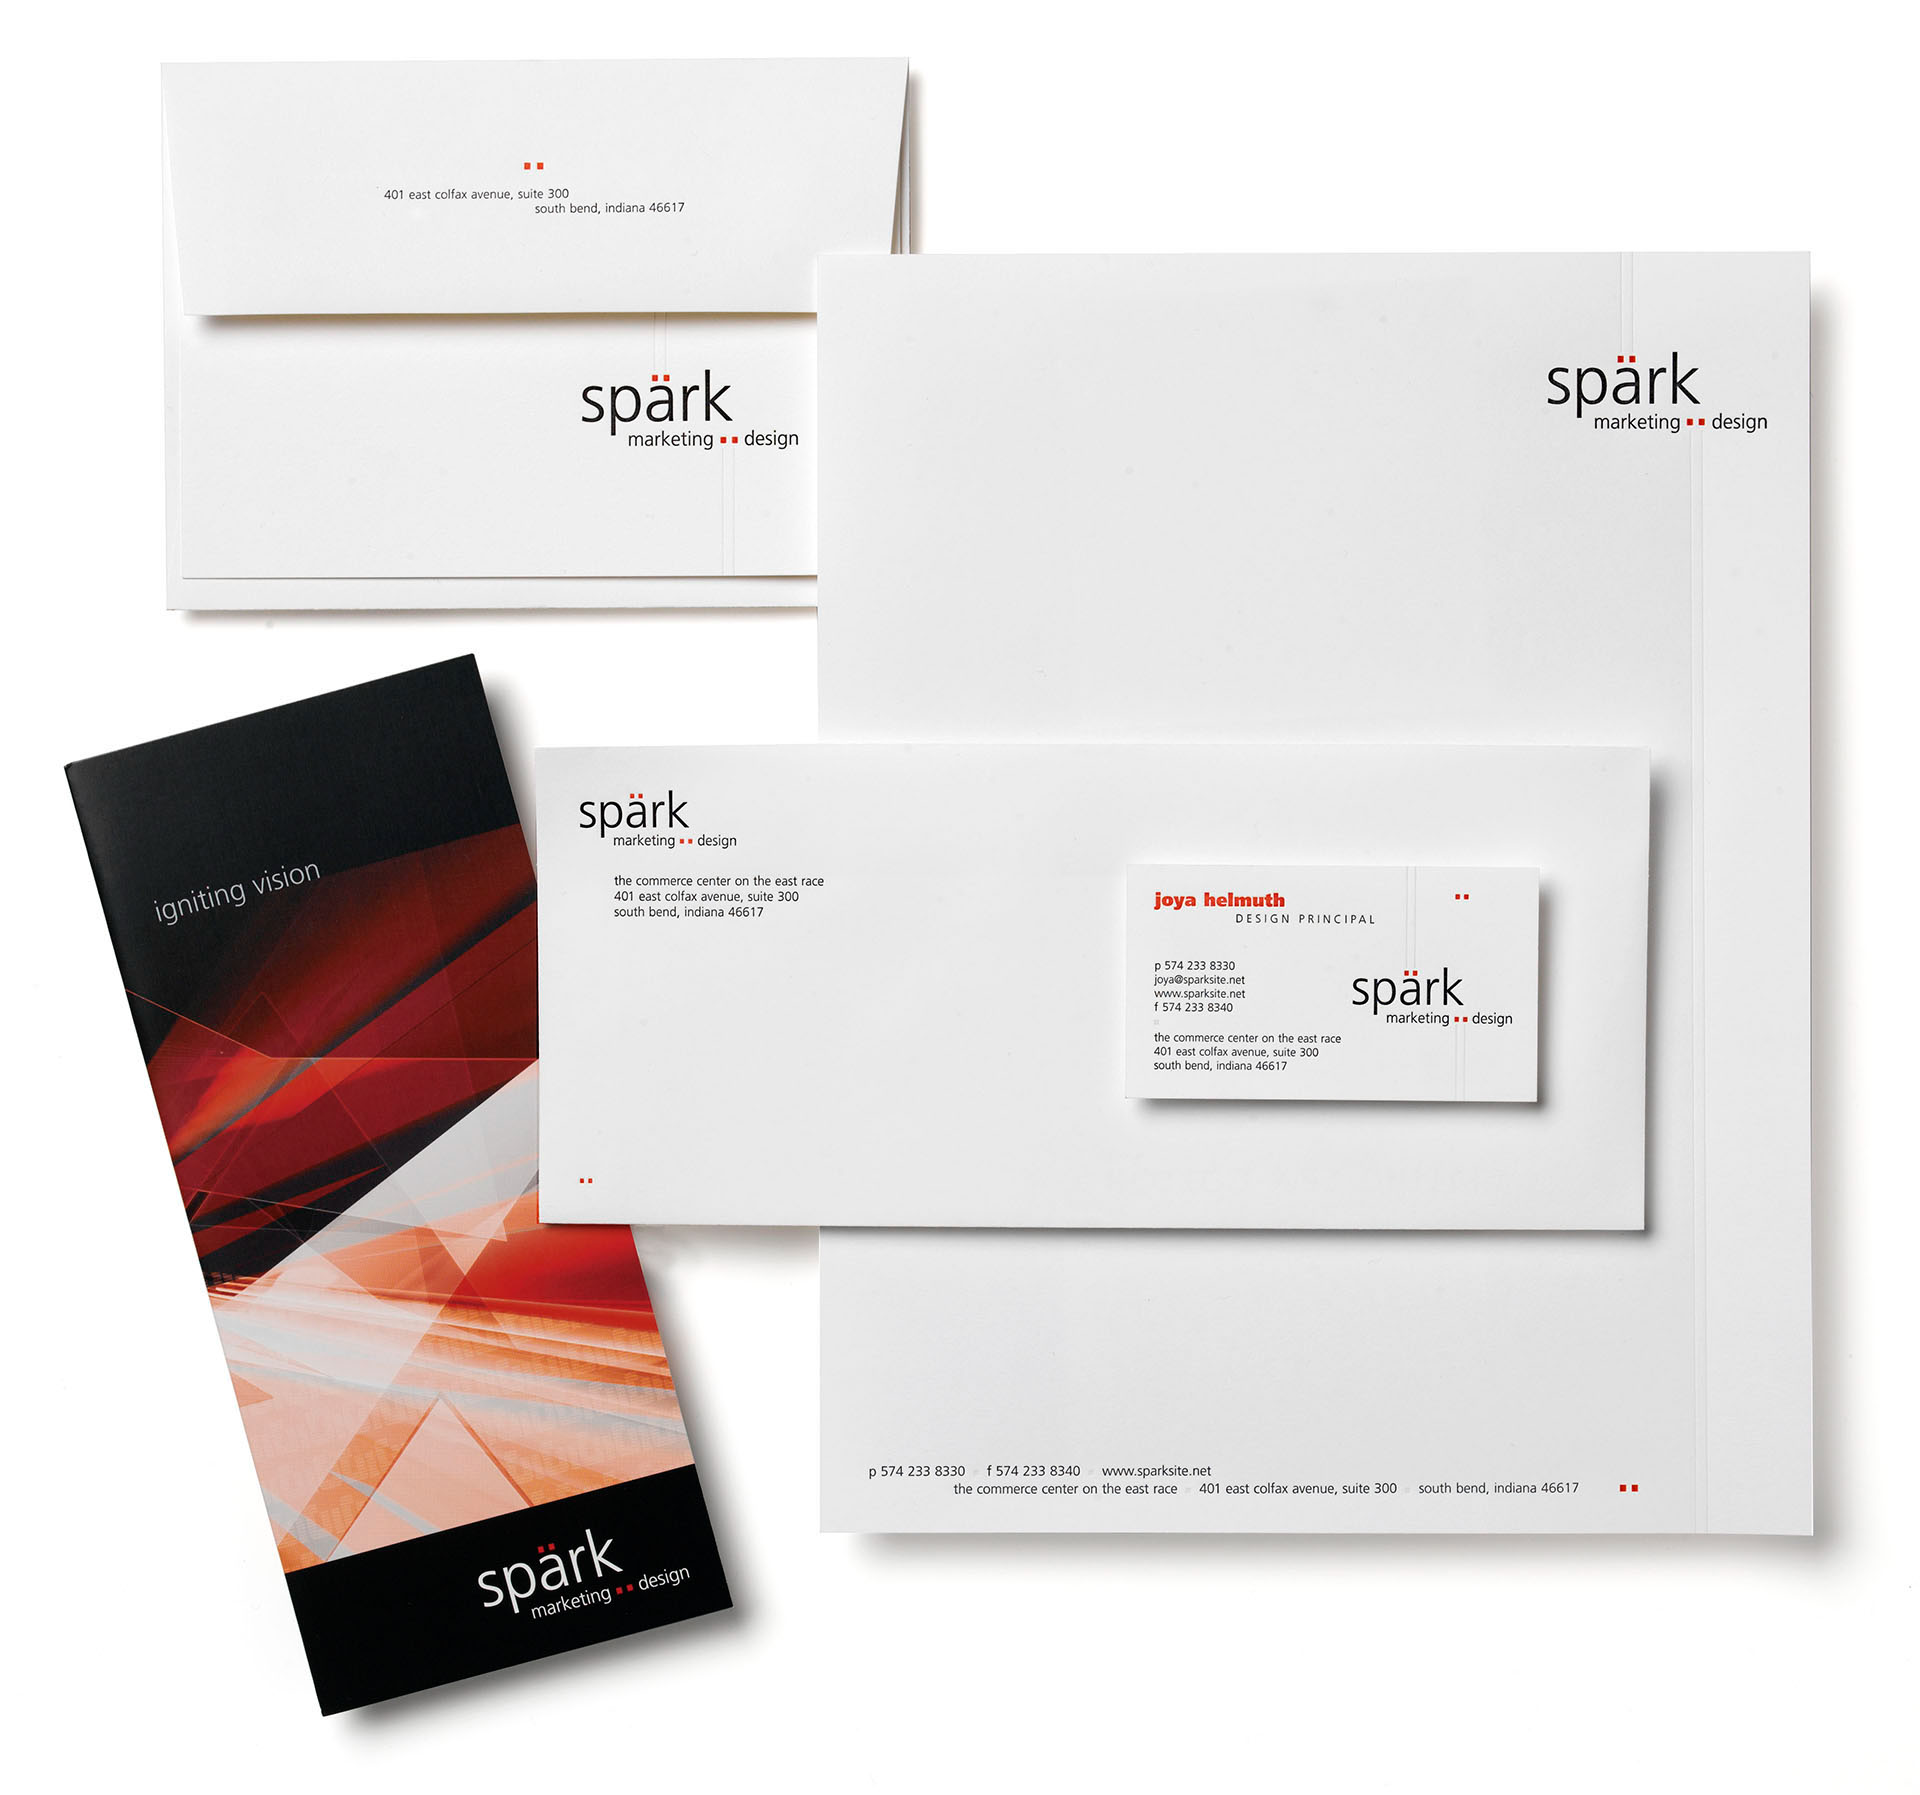 99 Inspirational Pictures Of Sparks Business Card | Bussiness ...